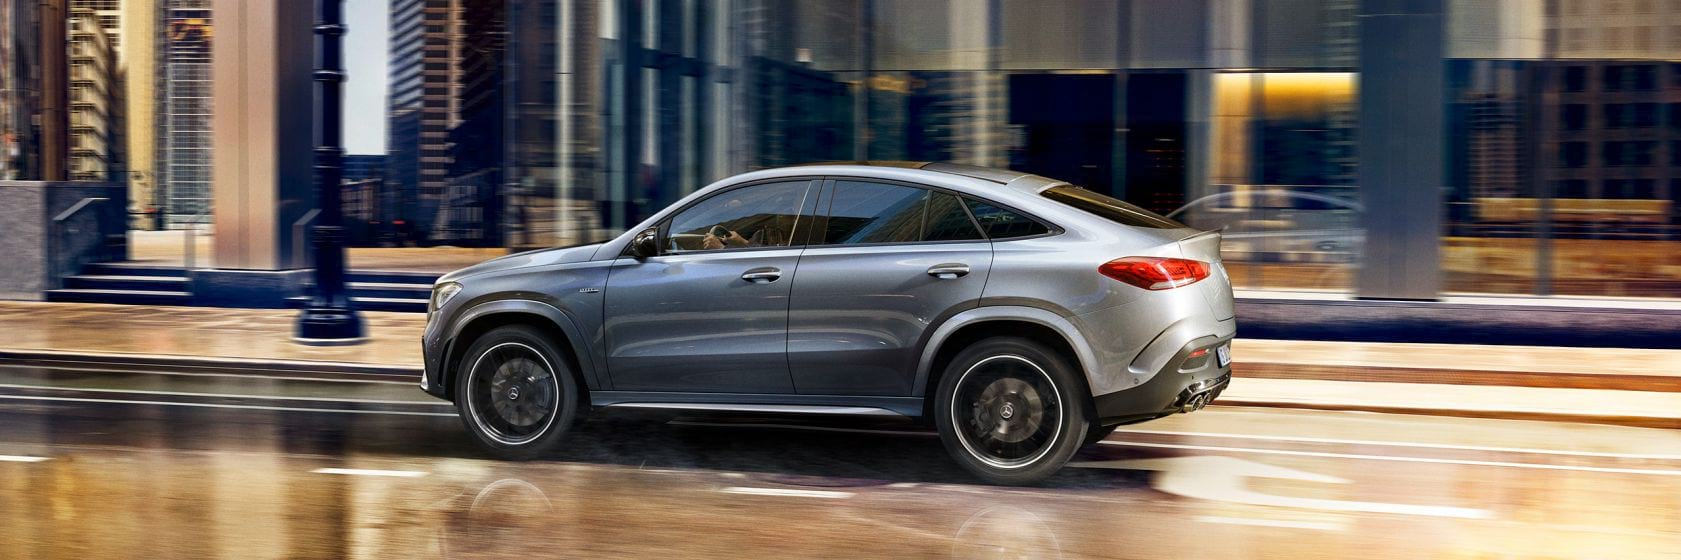 Дизайн Mercedes–Benz GLE Coupe